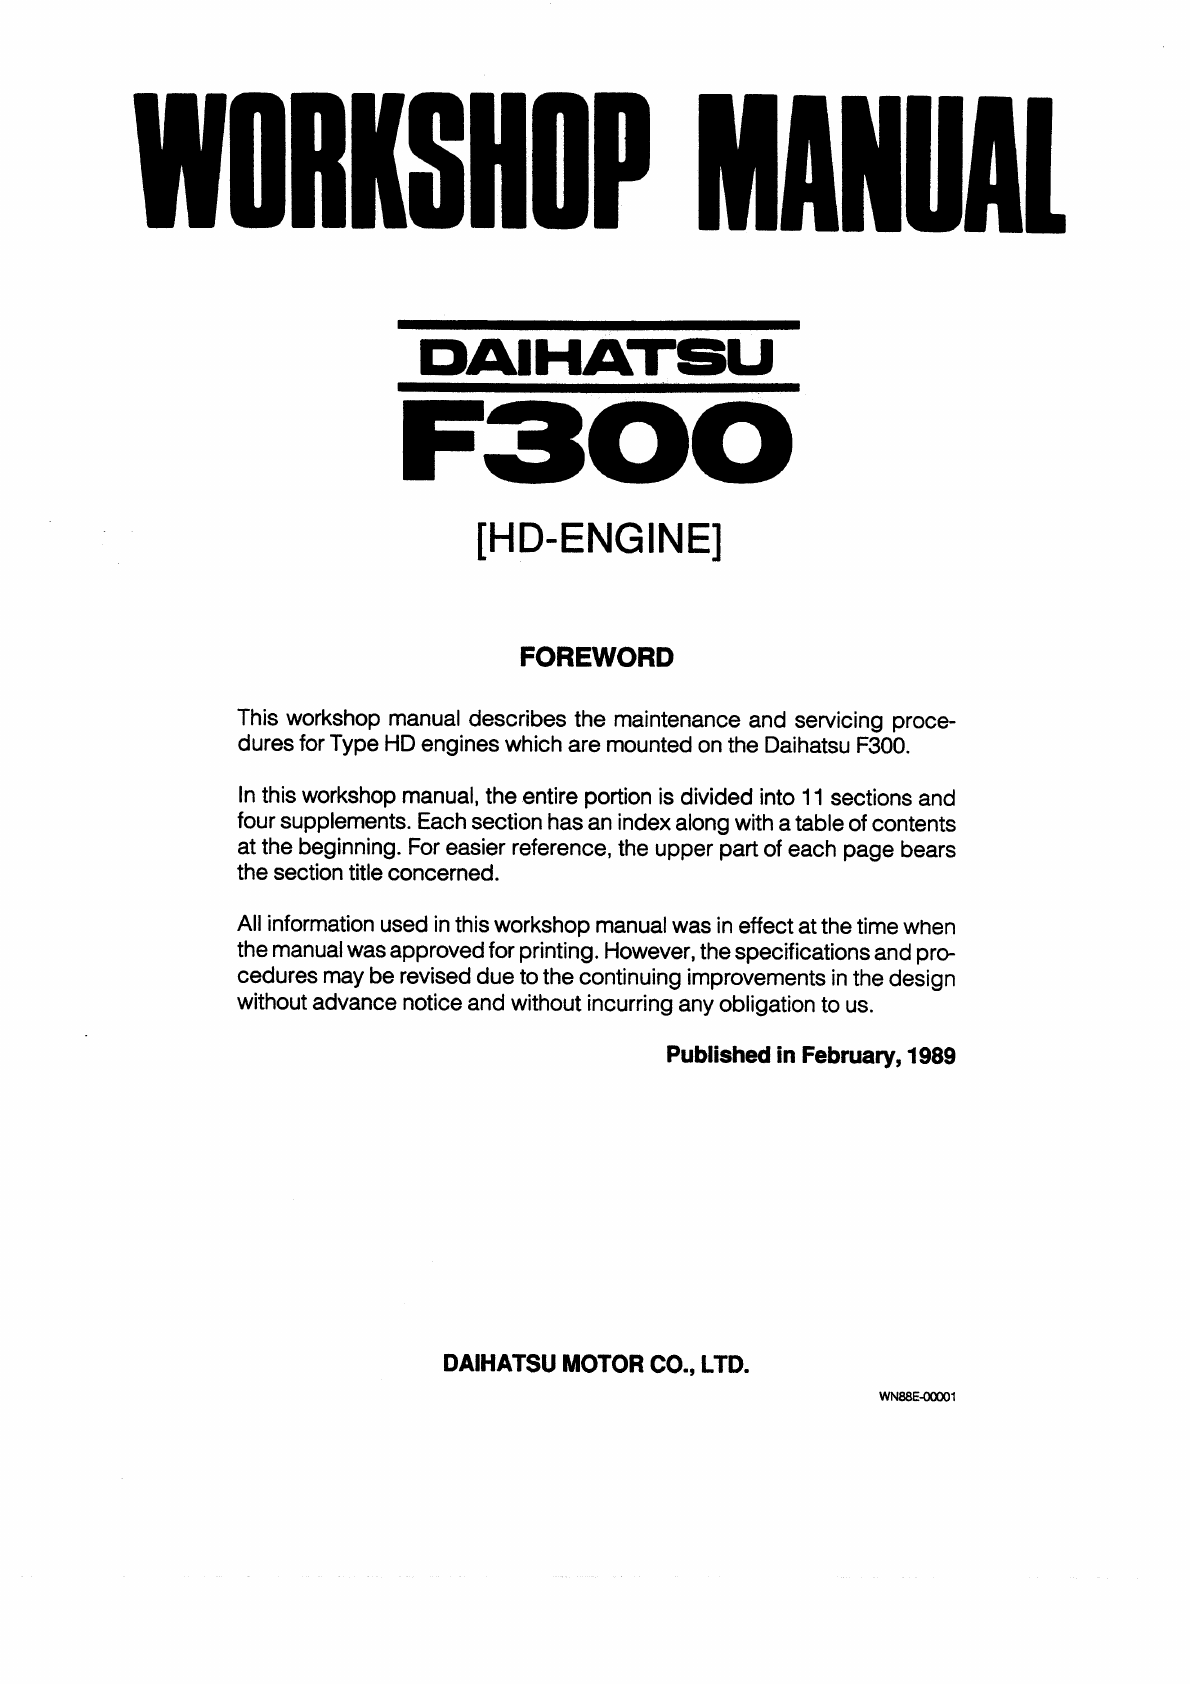 medium resolution of daihatsu 327 engine manual product user guide instruction u2022 rh mekatta co residential electrical wiring diagrams